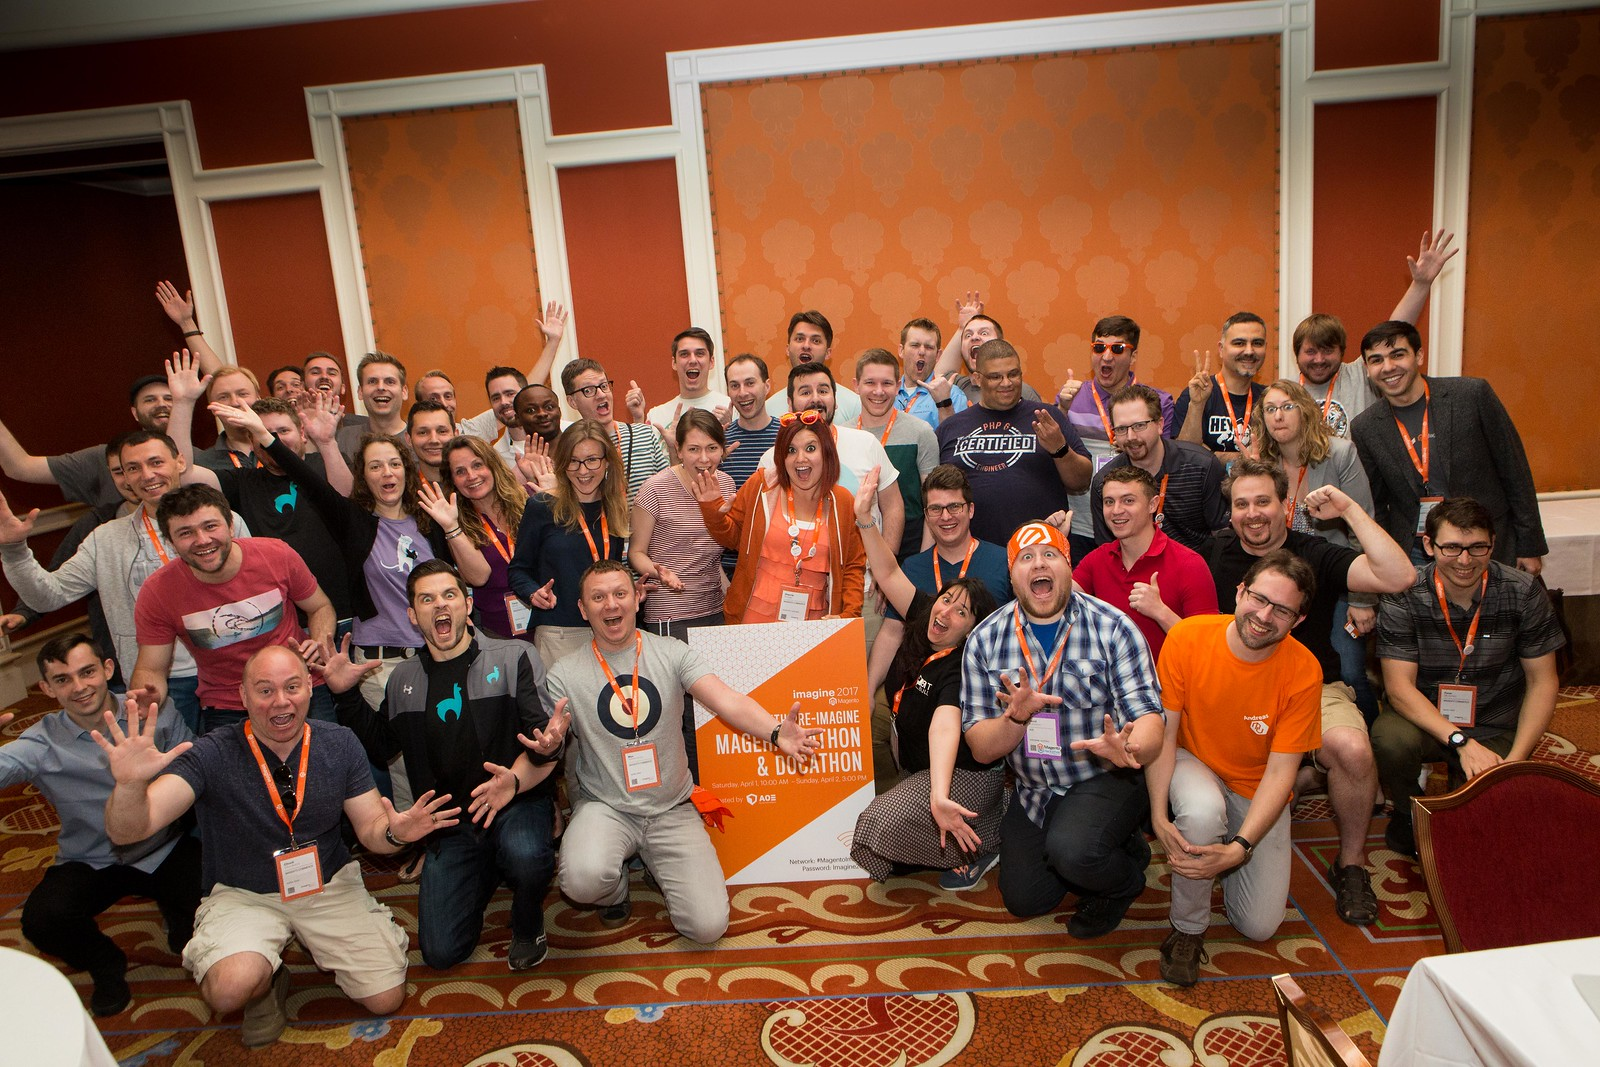 magento: Our wonderful community manager @Sherrierohde recapped #MagentoImagine in this week's #MagentoMonday blog: https://t.co/UqI4d2Fwo7